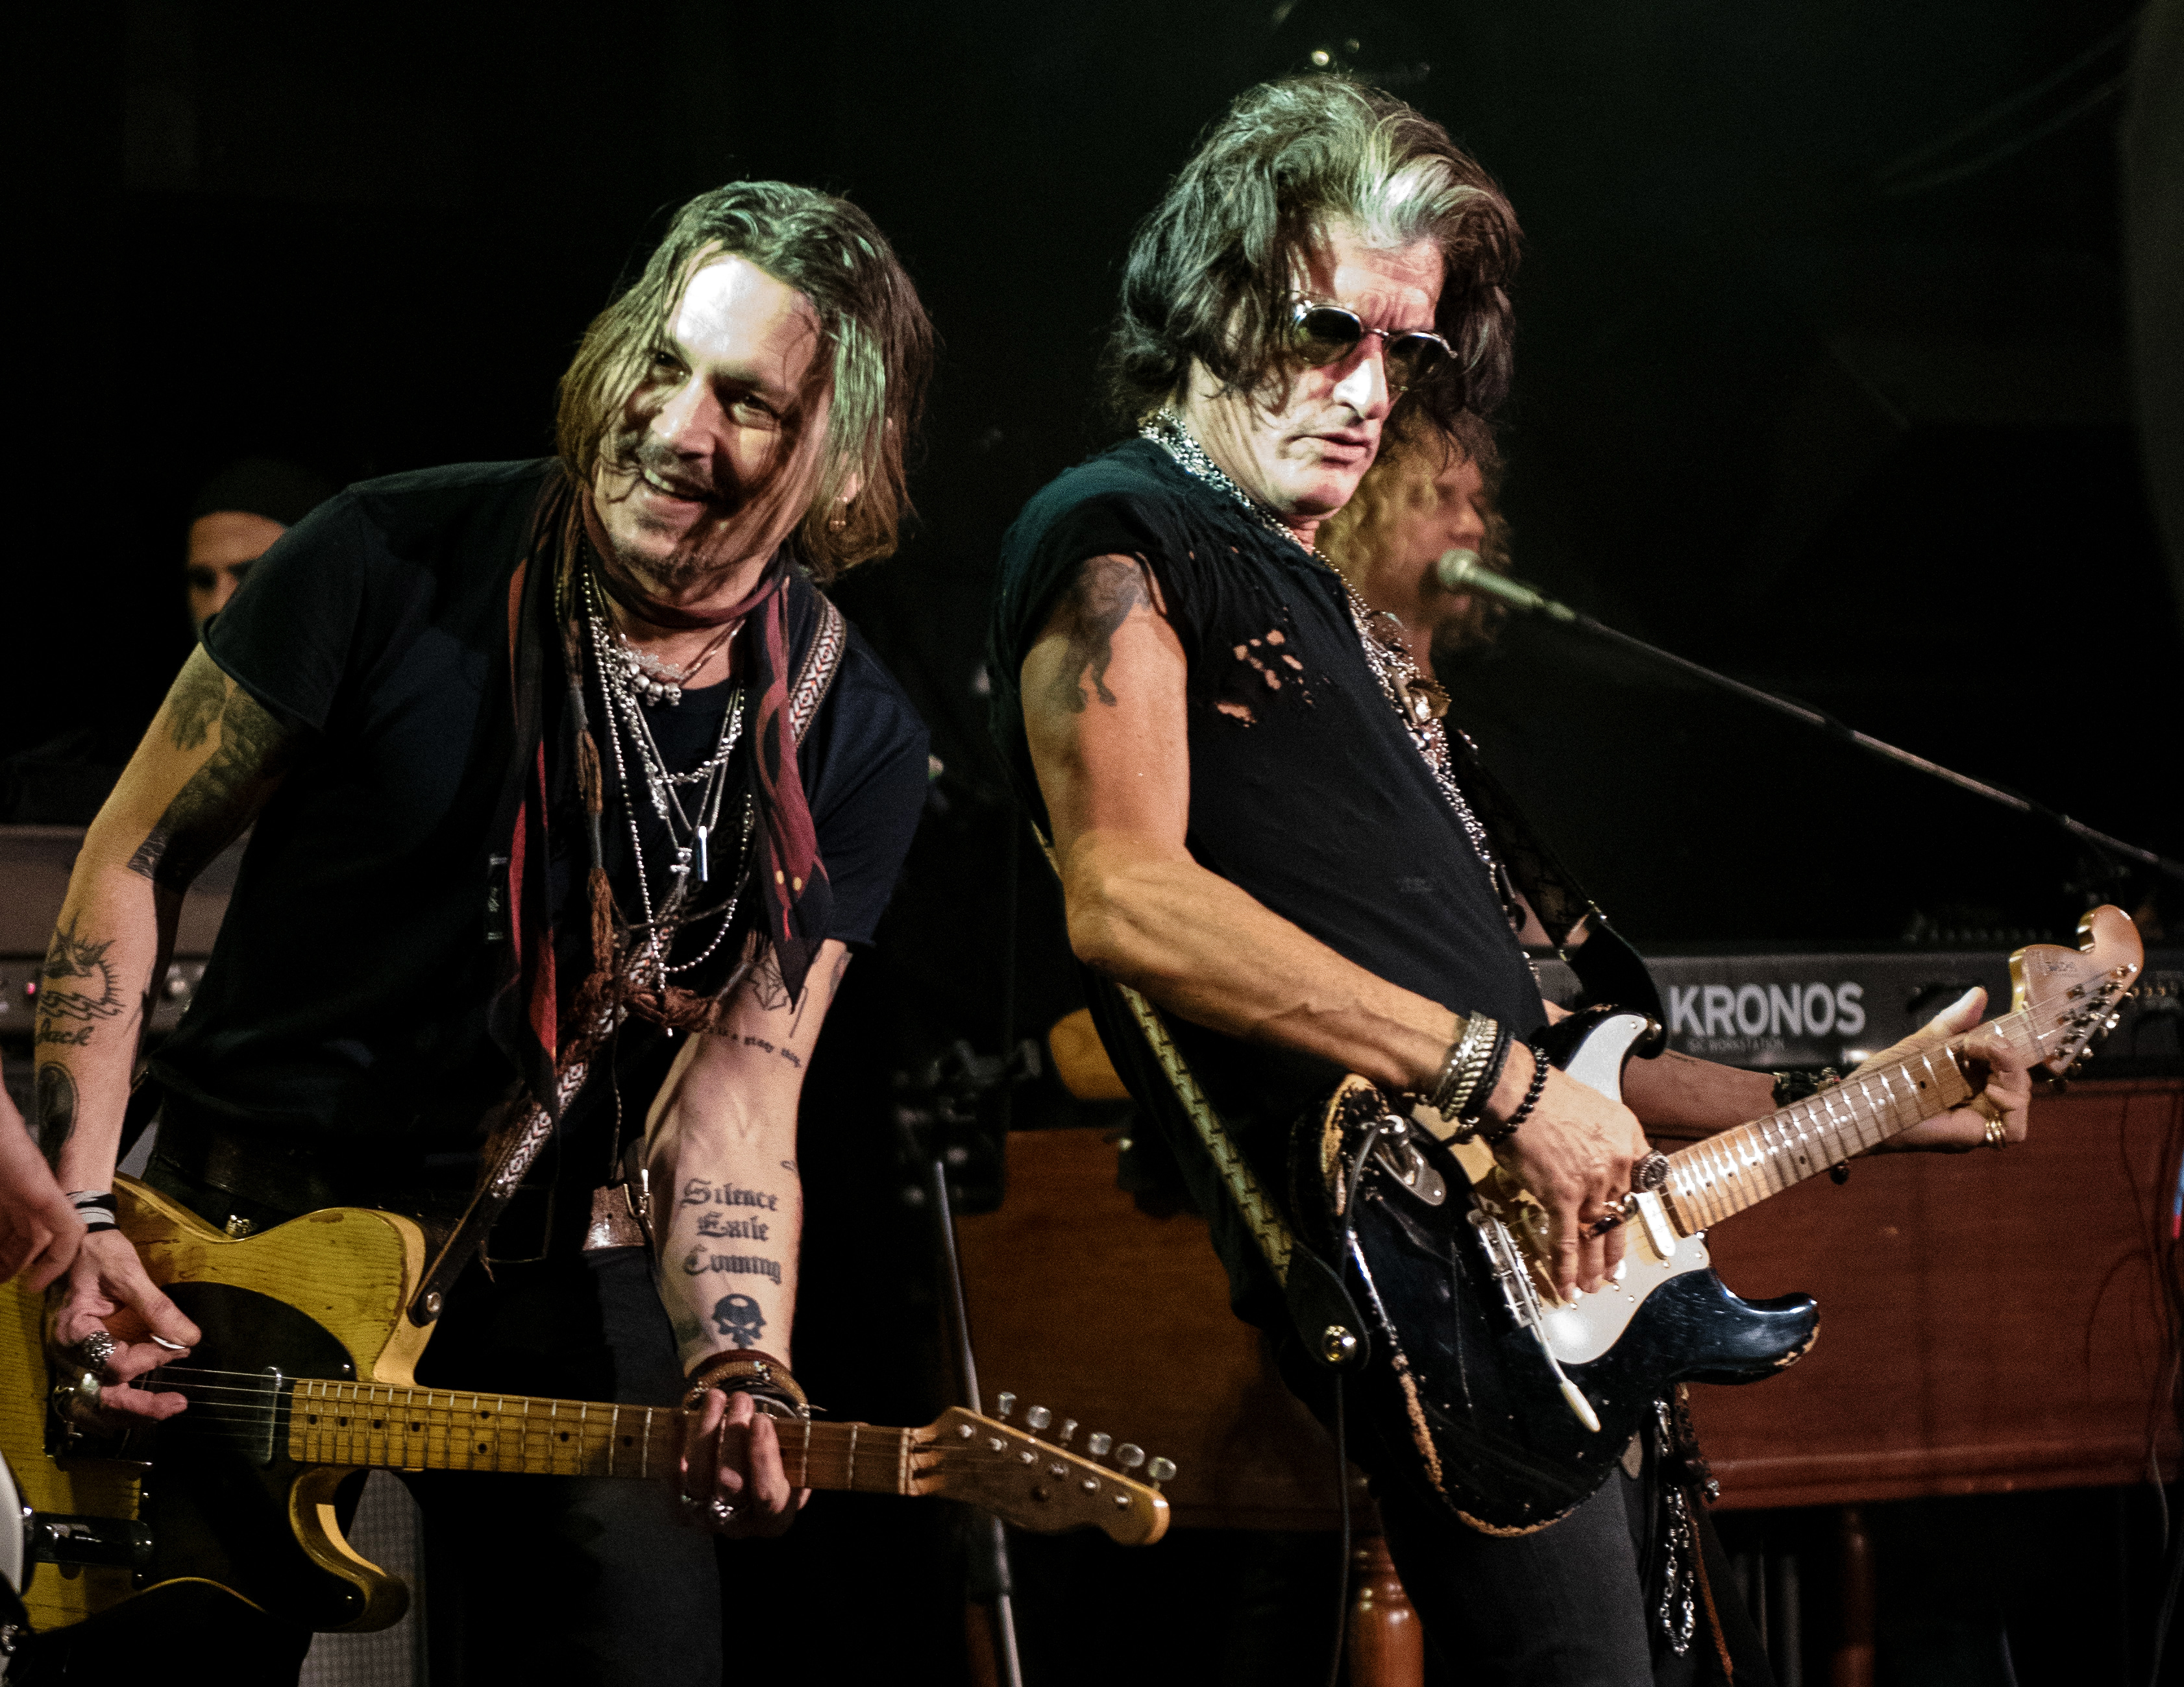 Aerosmith S Joe Perry Talks Sweetzerland Manifesto Solo Lp Rolling Stone Joe perry and the rest of the project discuss how german vocalist hagen came to be a part of the band. joe perry talks sweetzerland manifesto